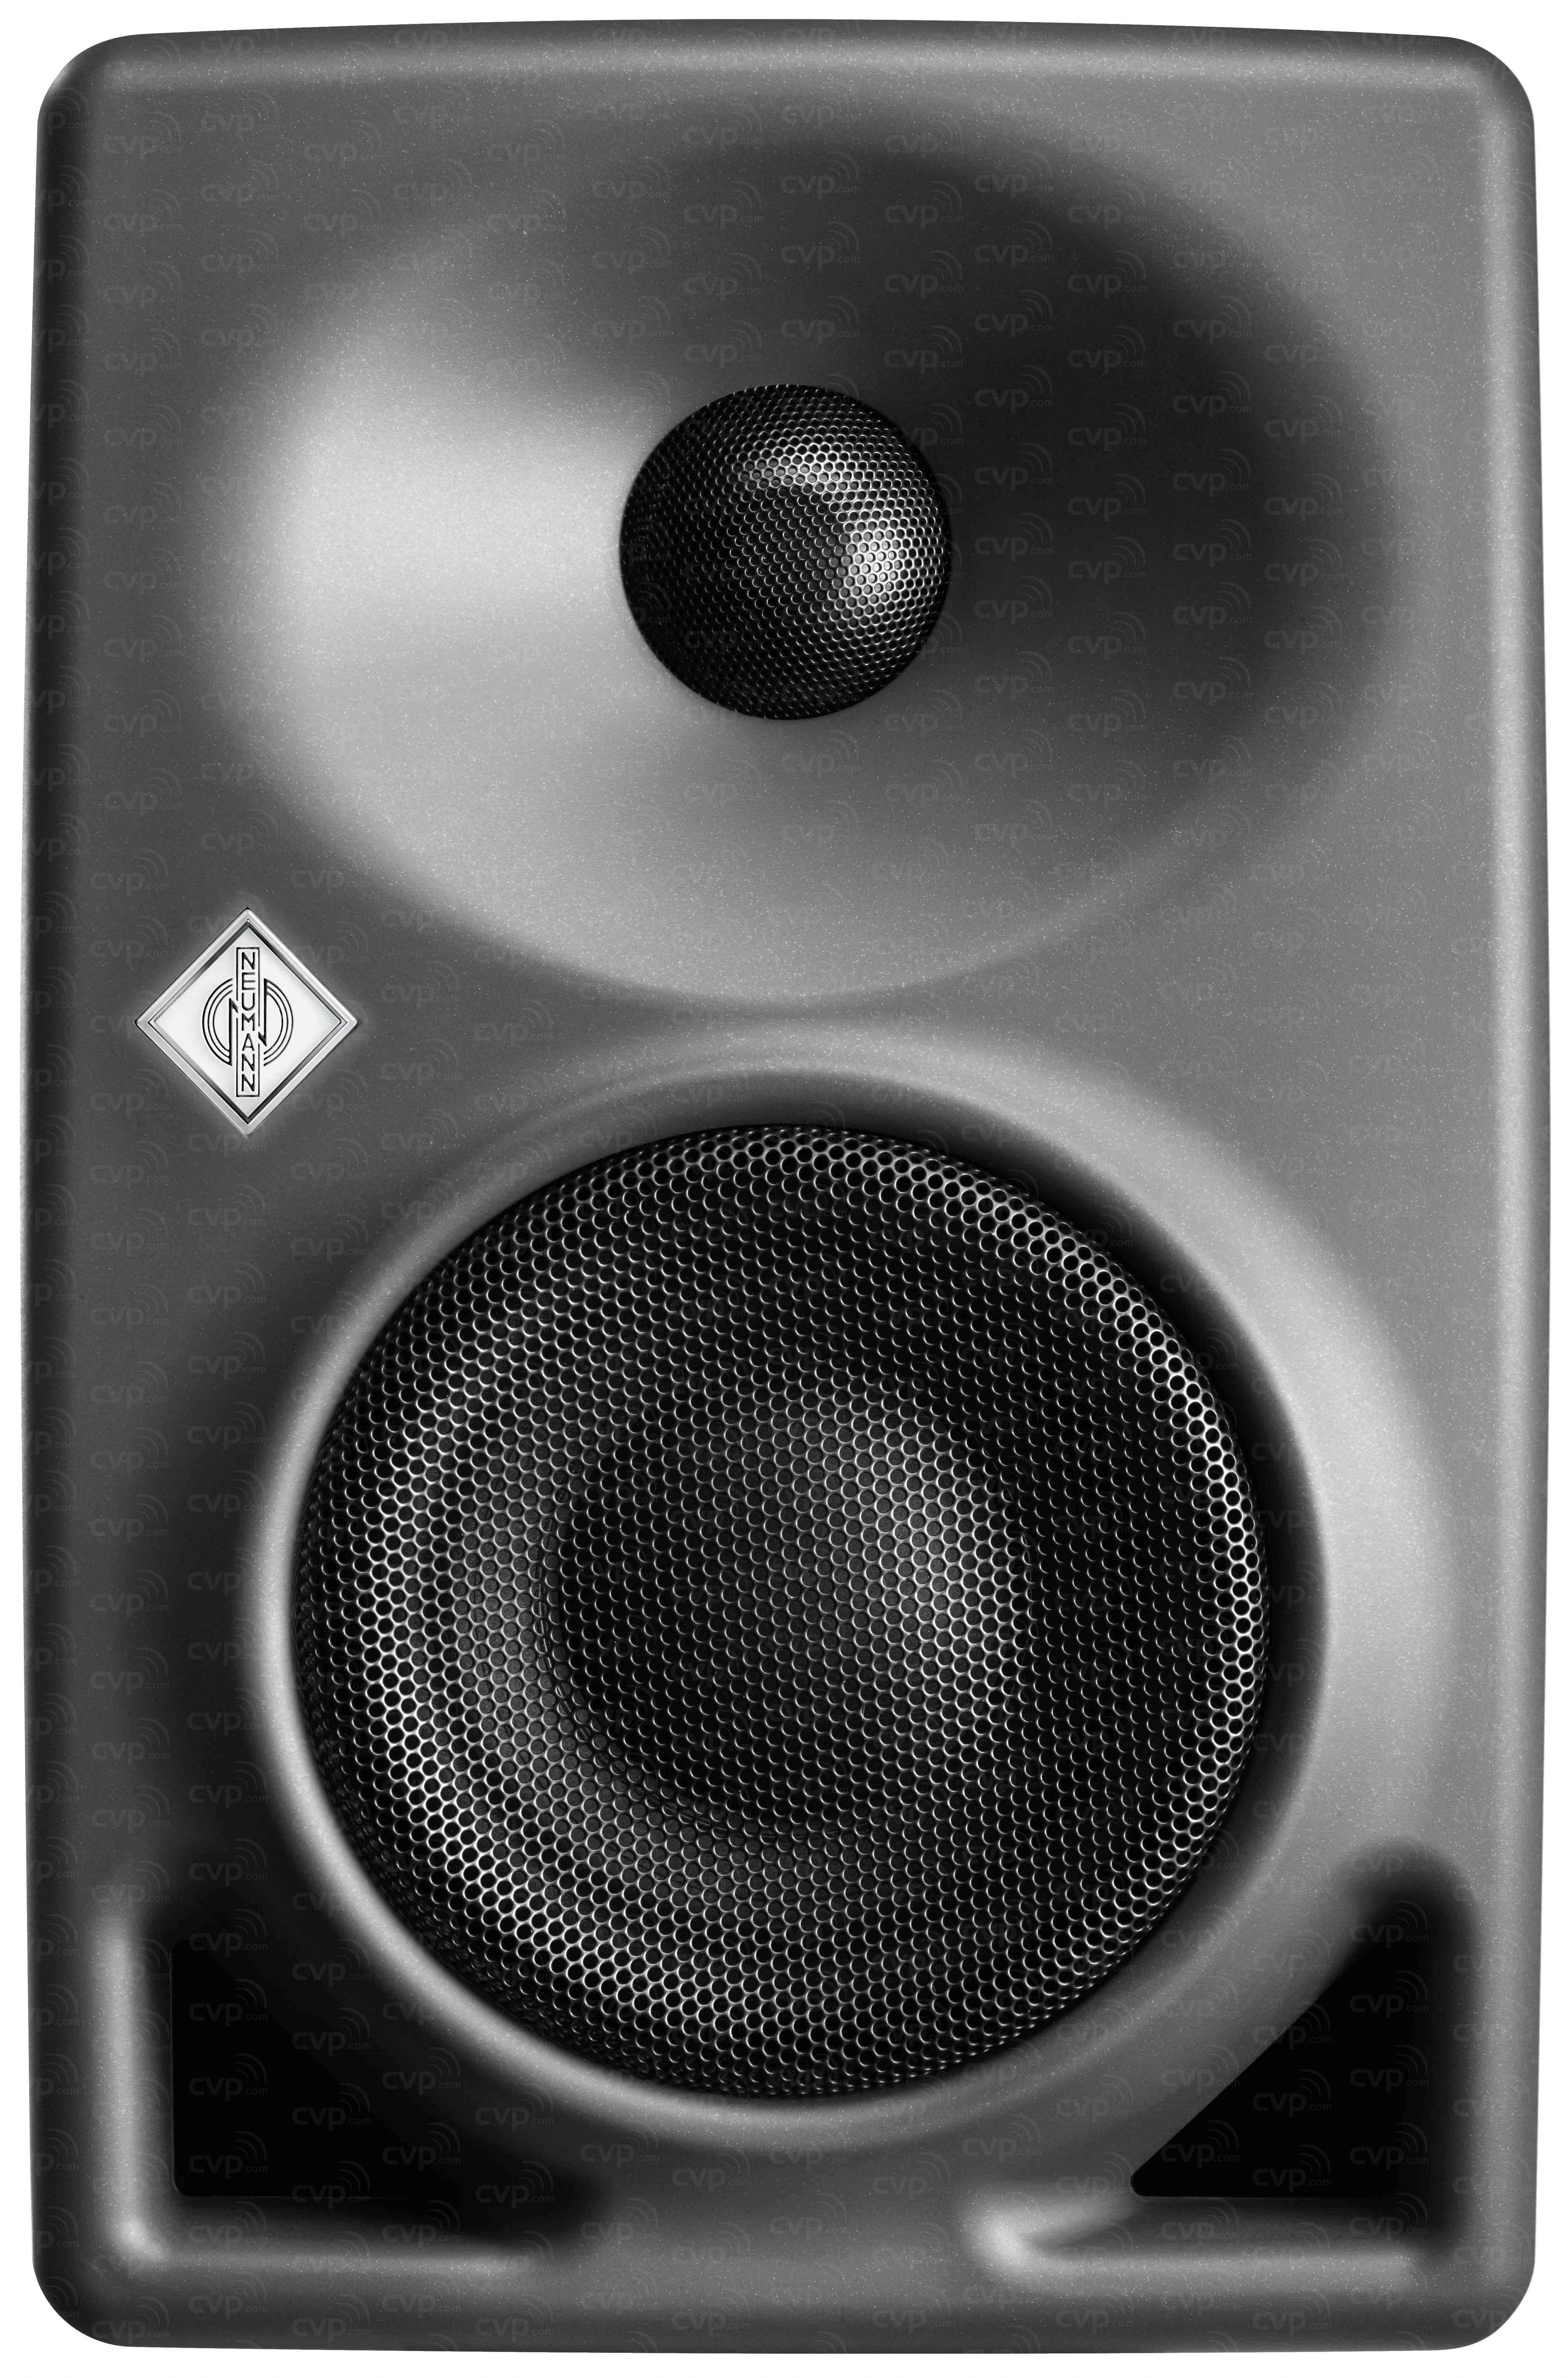 Buy Neumann Kh 80 Dsp A G Uk 2 Way Active Near Field Studio Circuitry Is Used To Eliminate Interference Noise By Actively Monitor Speaker With Mains Cable P N 506836